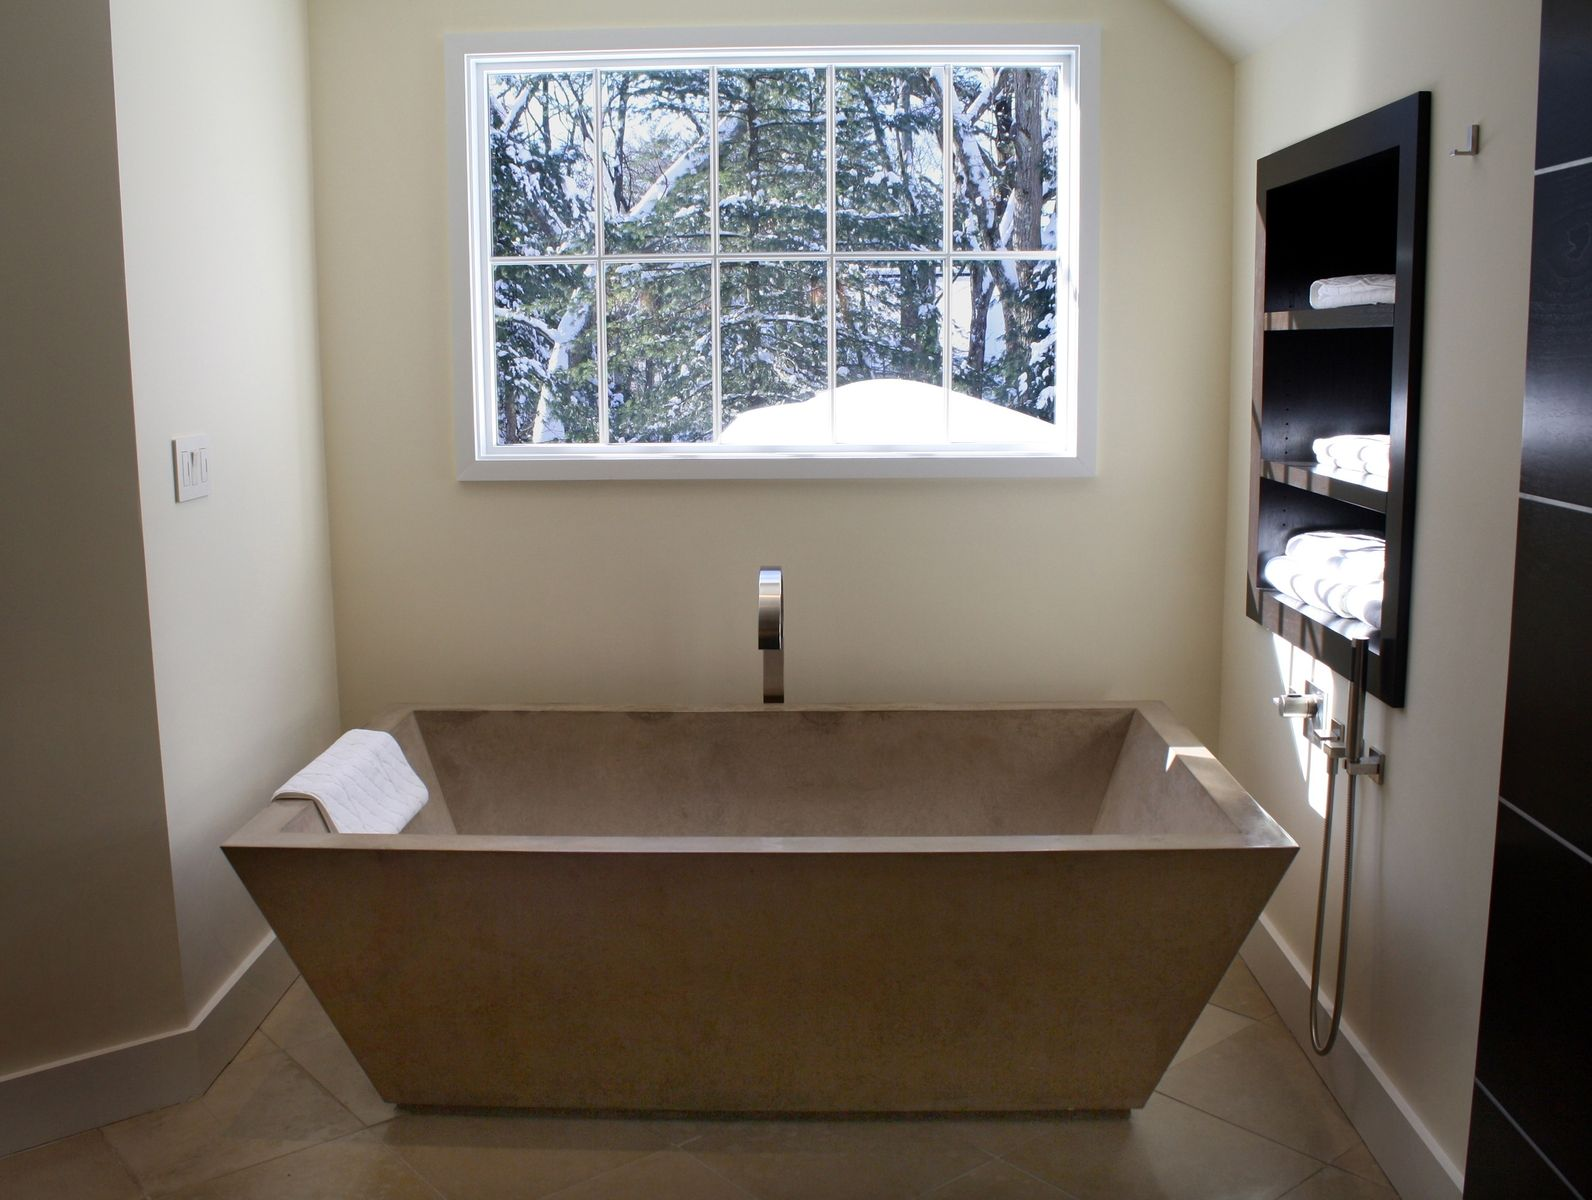 Hand Crafted Concrete Tub by Stone Soup Concrete, Inc | CustomMade.com